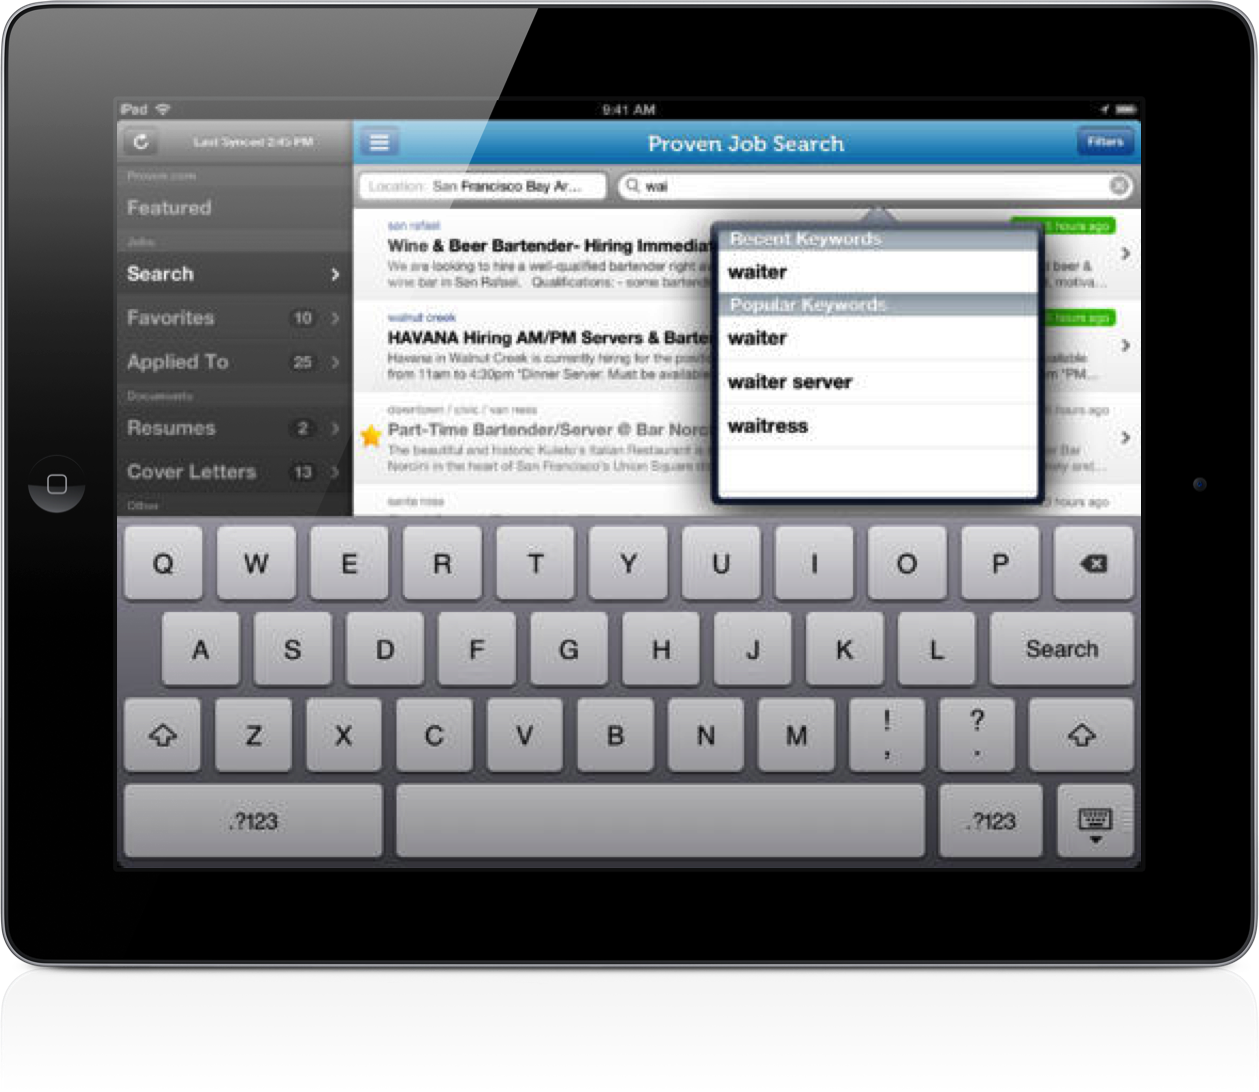 Proven Hopes To Better Streamline The Job Hiring Process With New iOS App